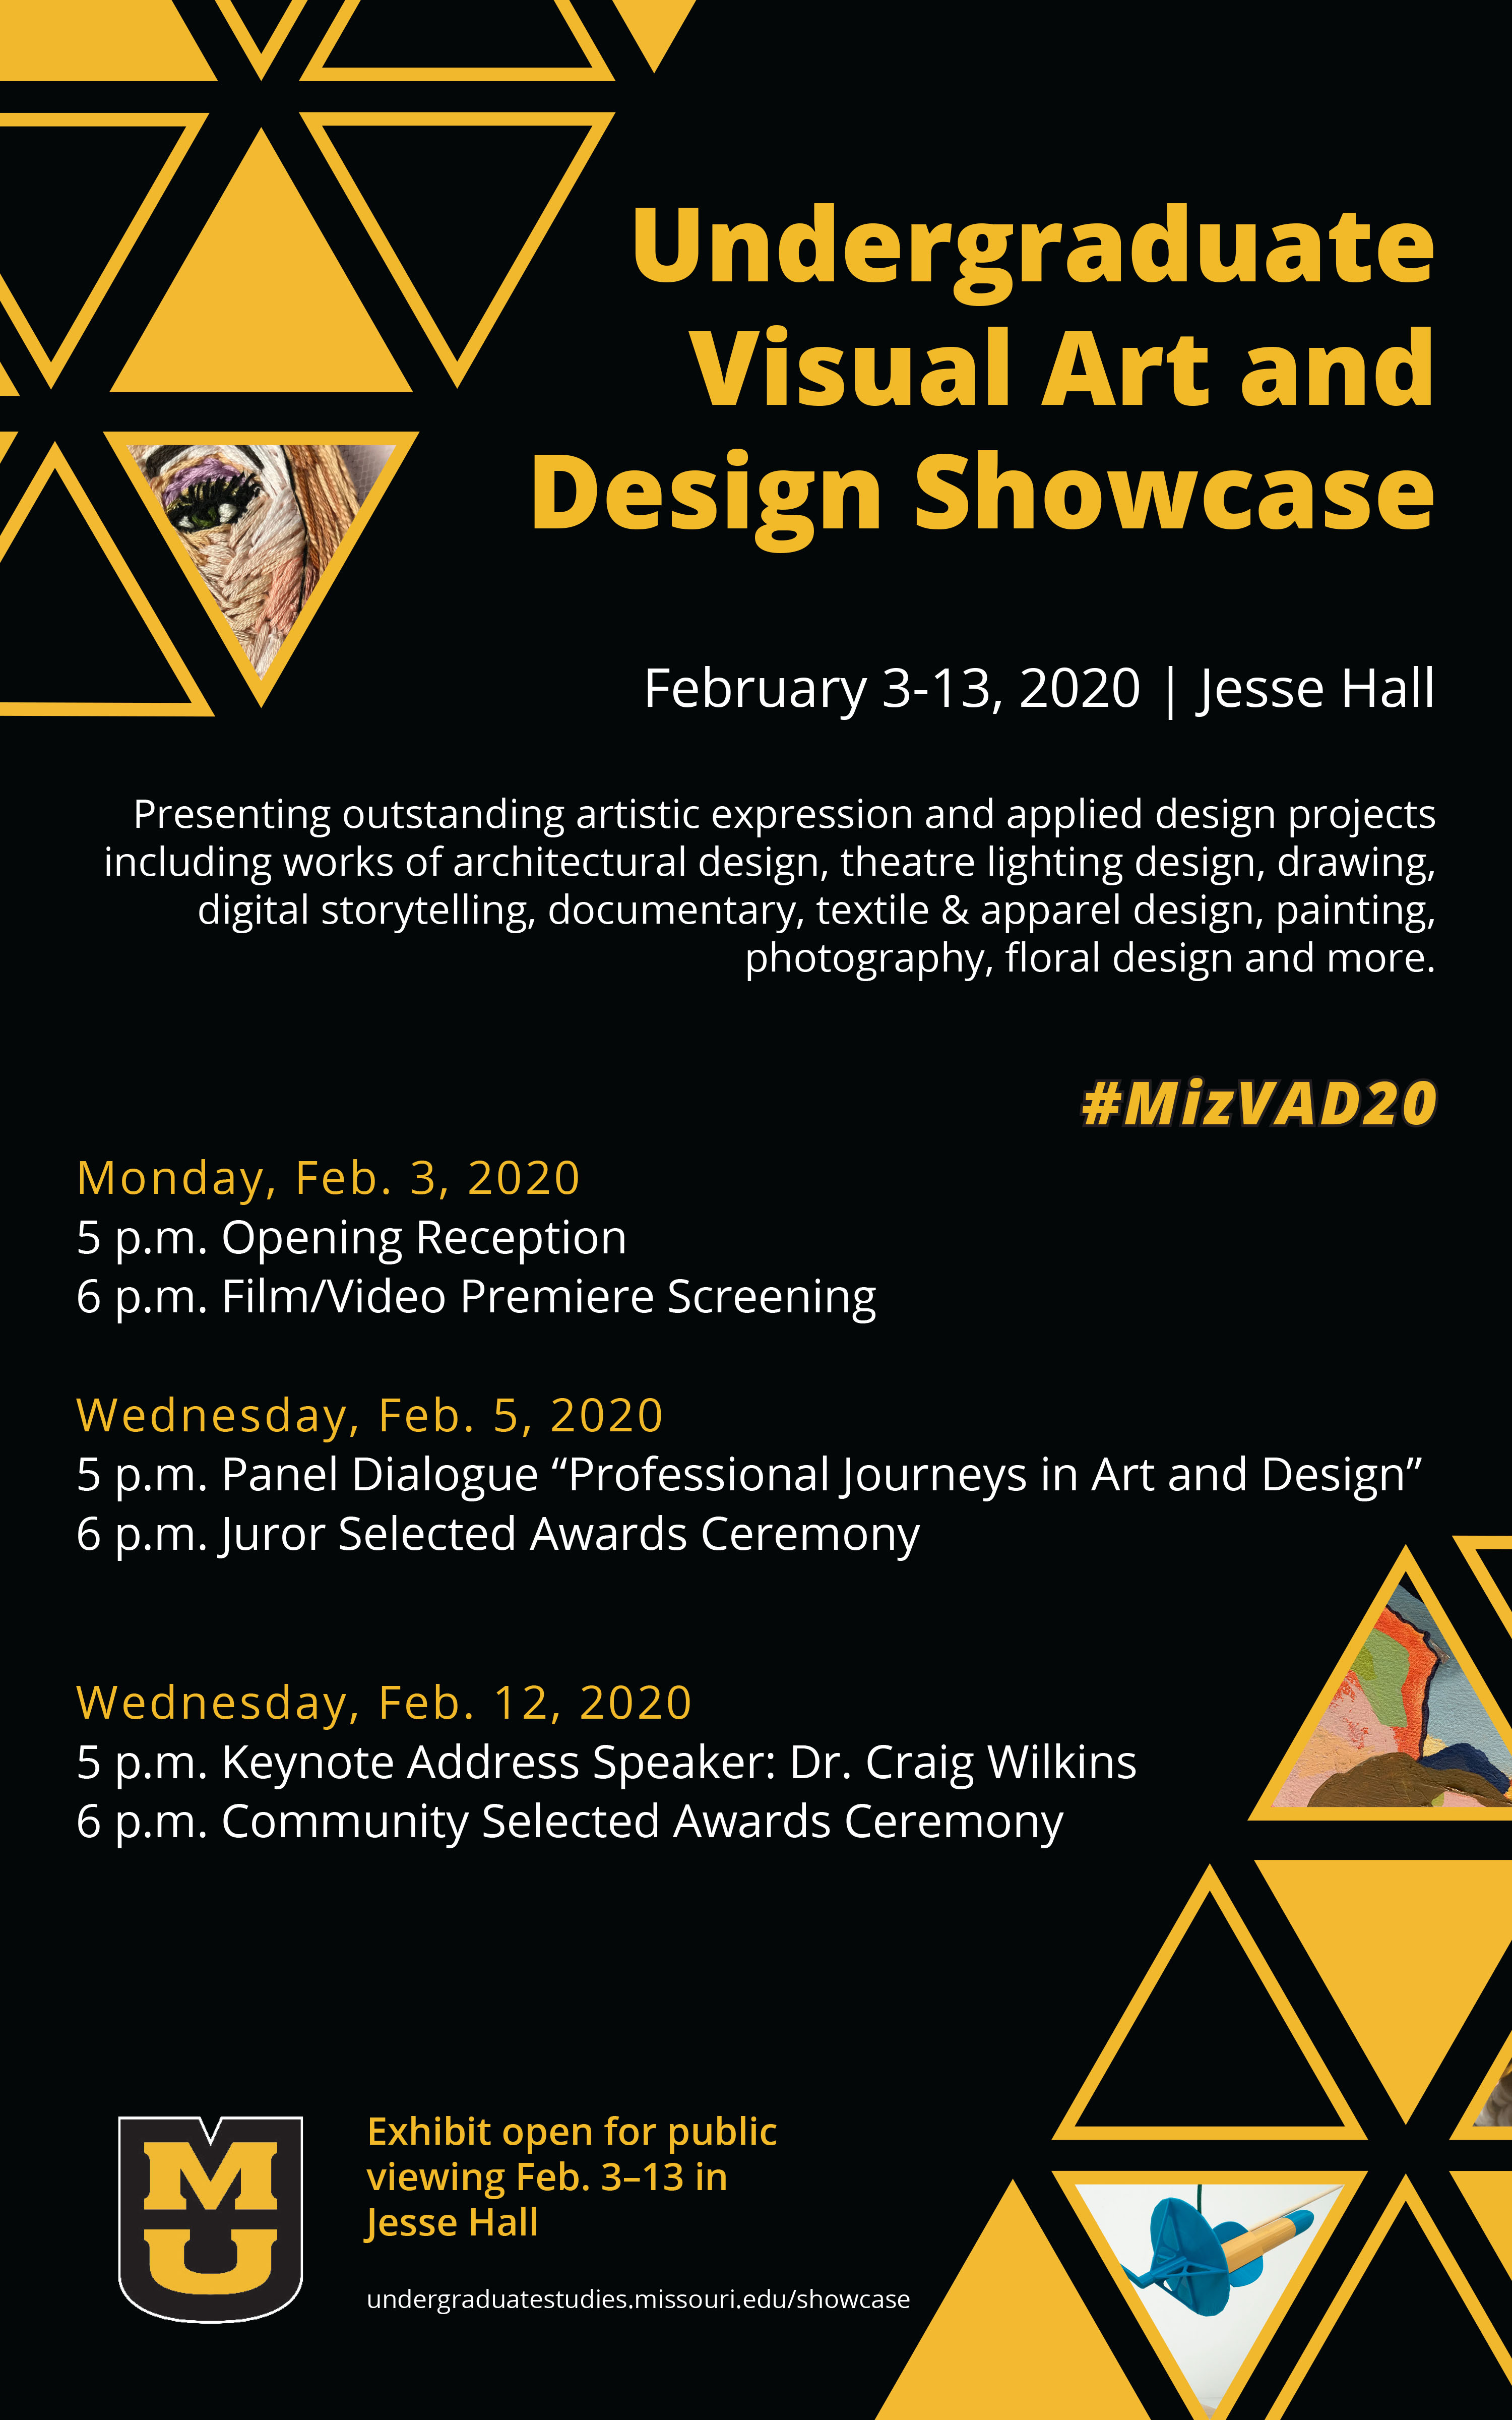 Visual Art and Design Showcase